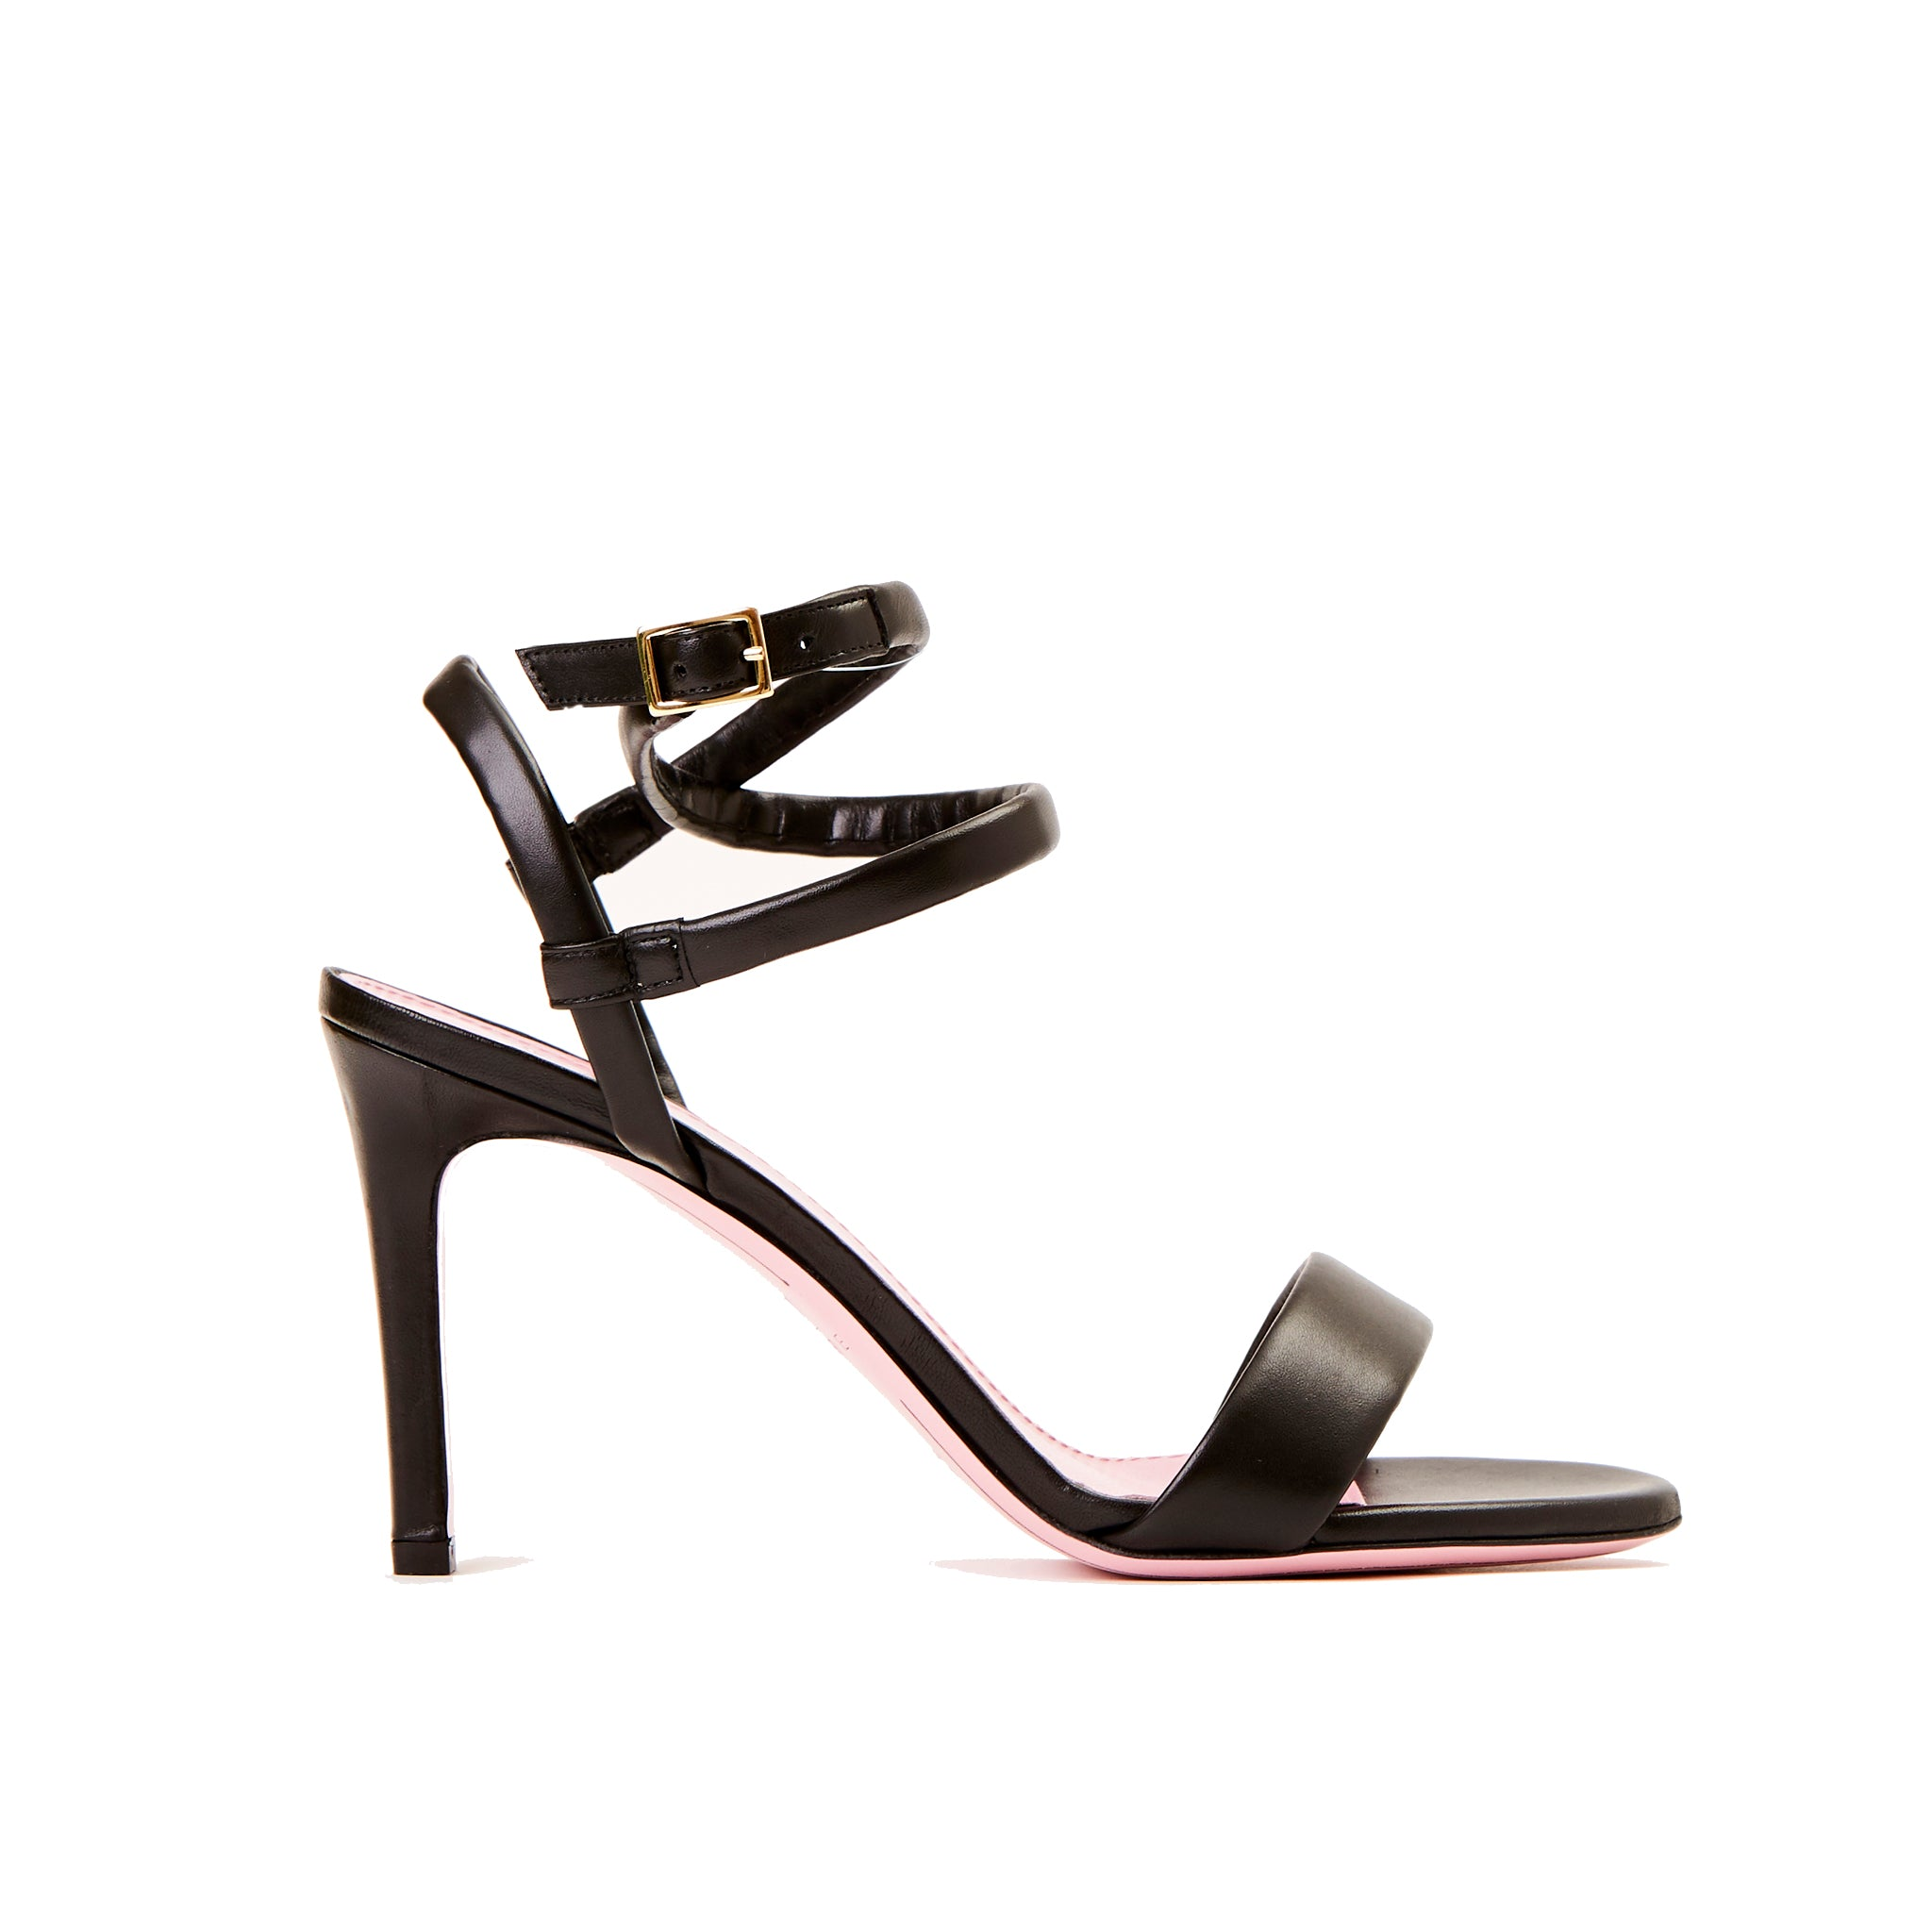 Phare Wrap ankle strap high heel sandal in black leather